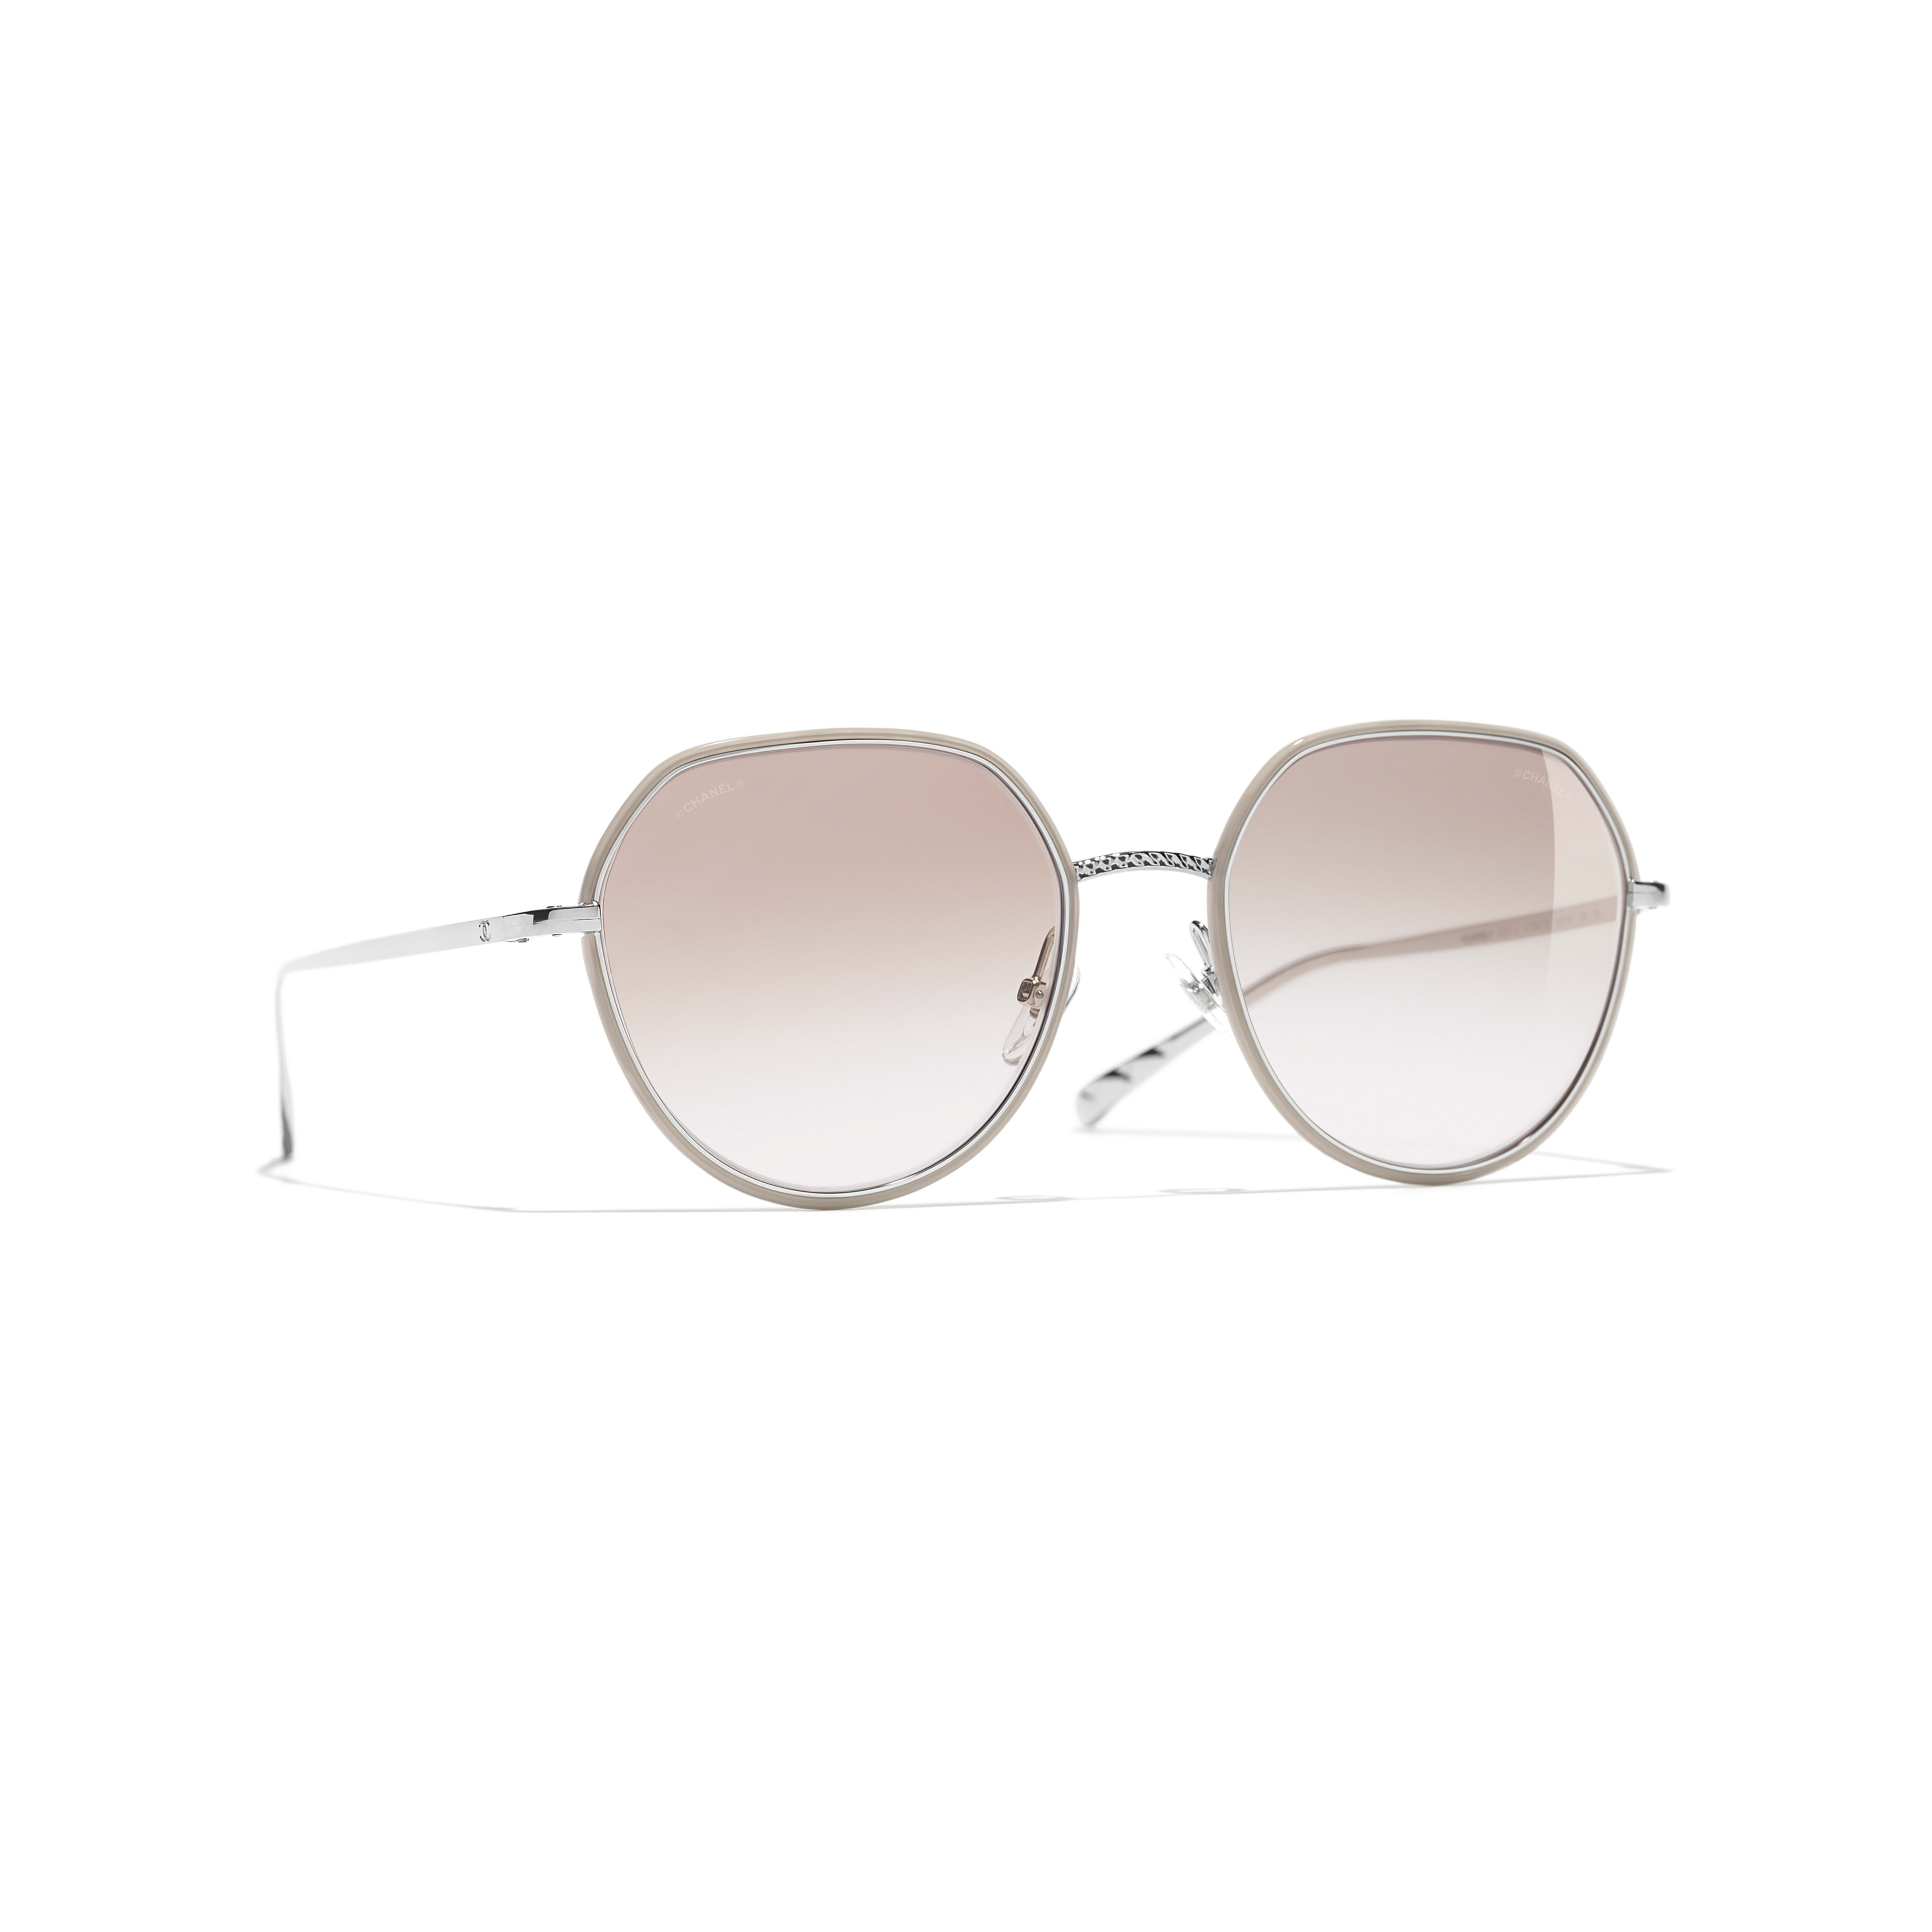 Round Sunglasses - Silver & Beige - Metal - Default view - see full sized version